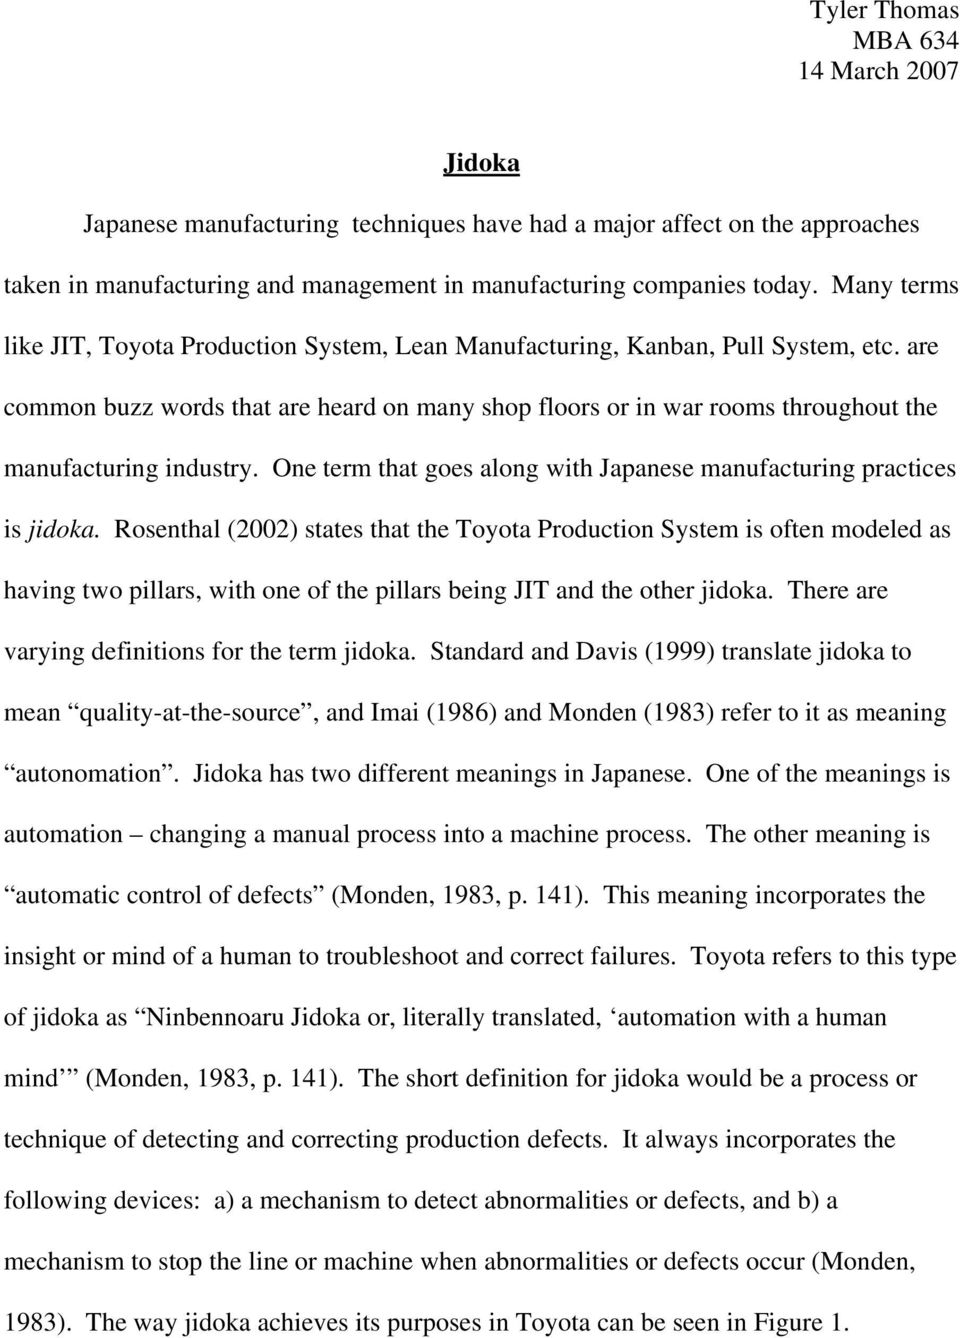 are common buzz words that are heard on many shop floors or in war rooms throughout the manufacturing industry. One term that goes along with Japanese manufacturing practices is jidoka.